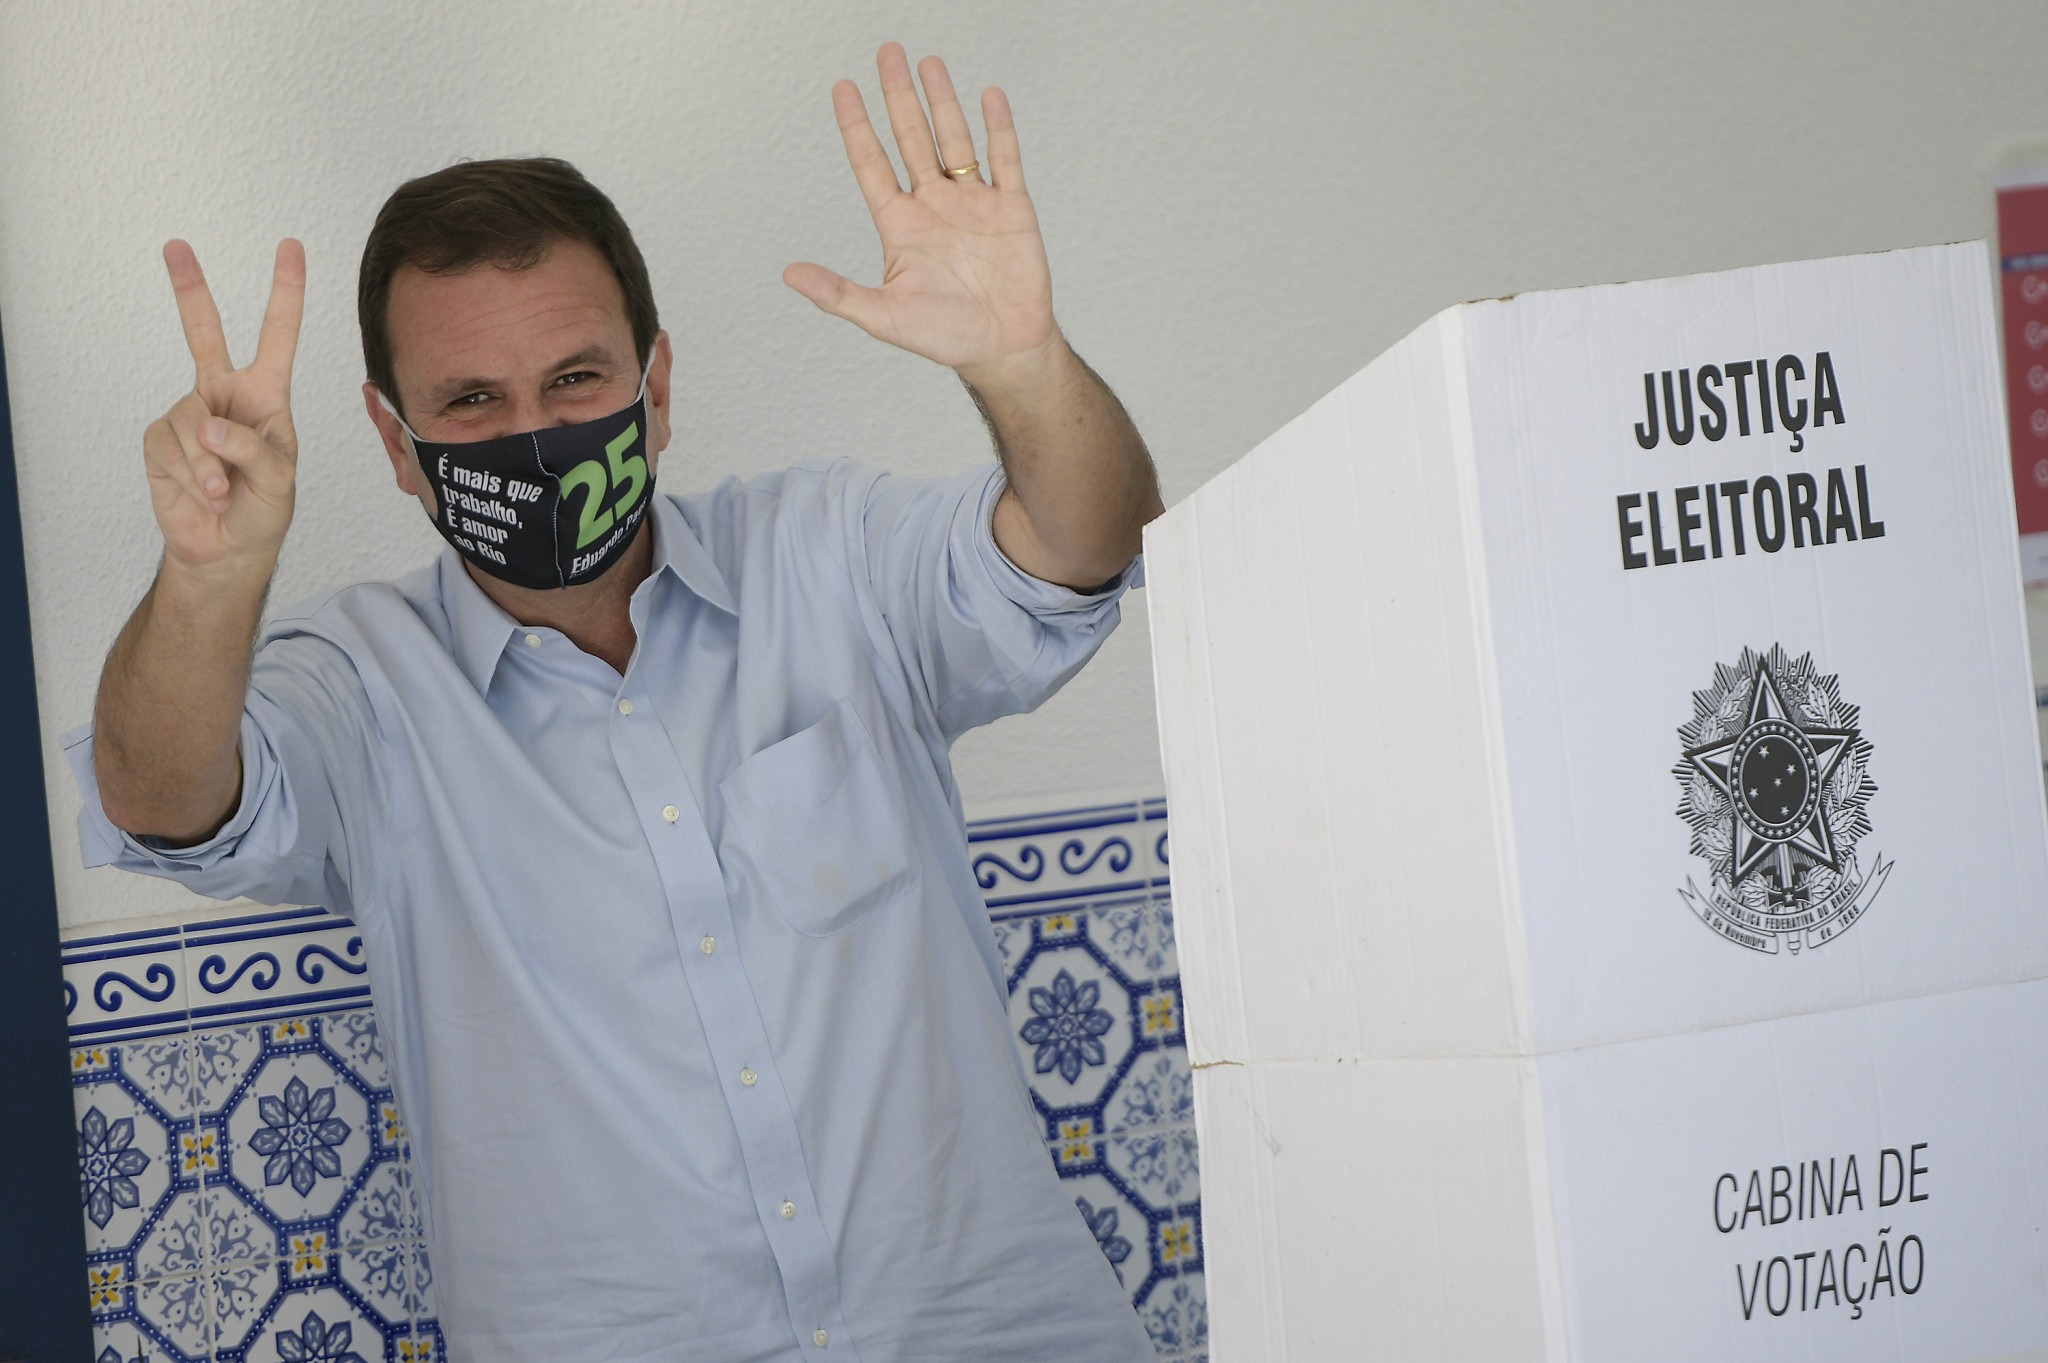 Paes re-elected Rio de Janeiro Mayor as voters ignore Olympic corruption claims